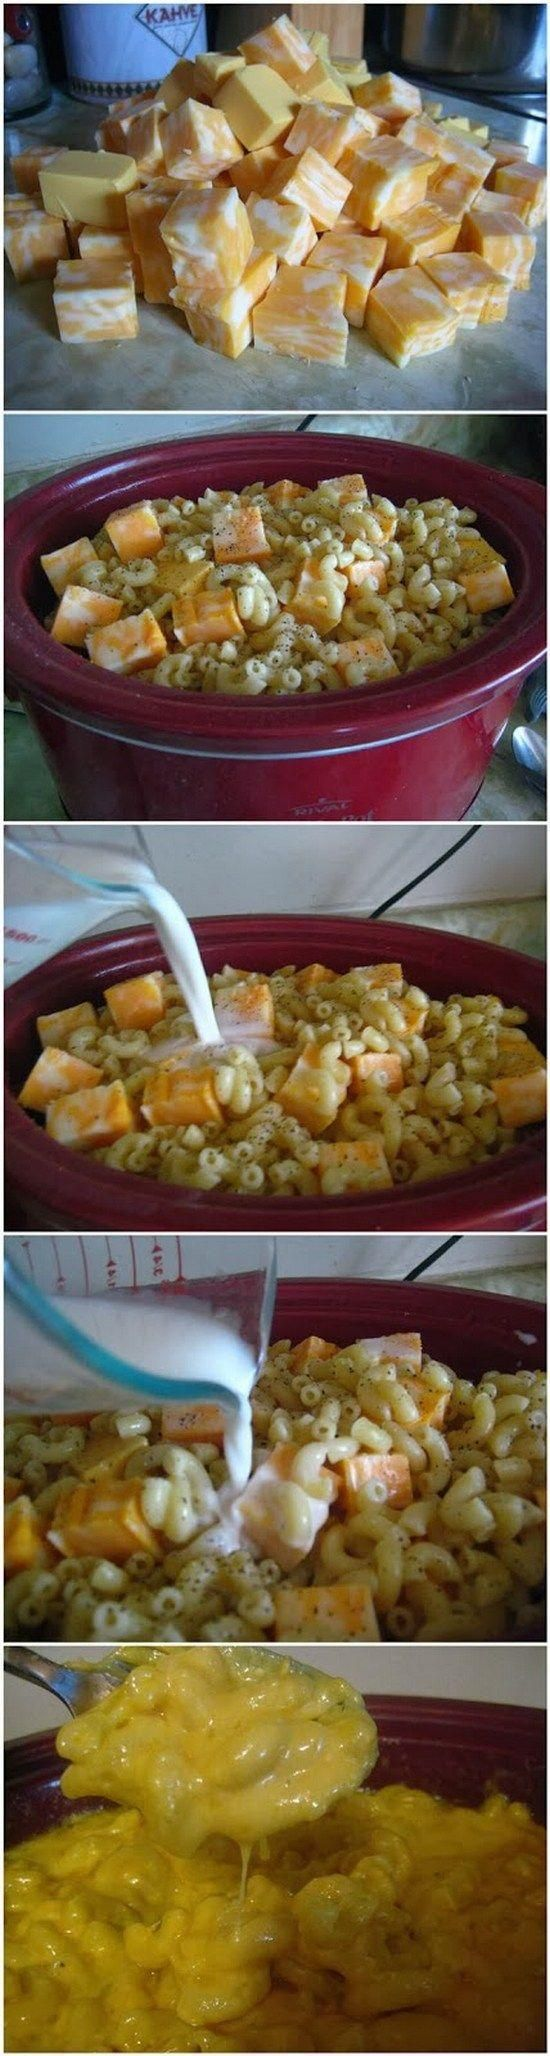 Crock Pot Mac and Cheese  A great meal to make in your crock pot on a busy day. So cheesy and creamy!